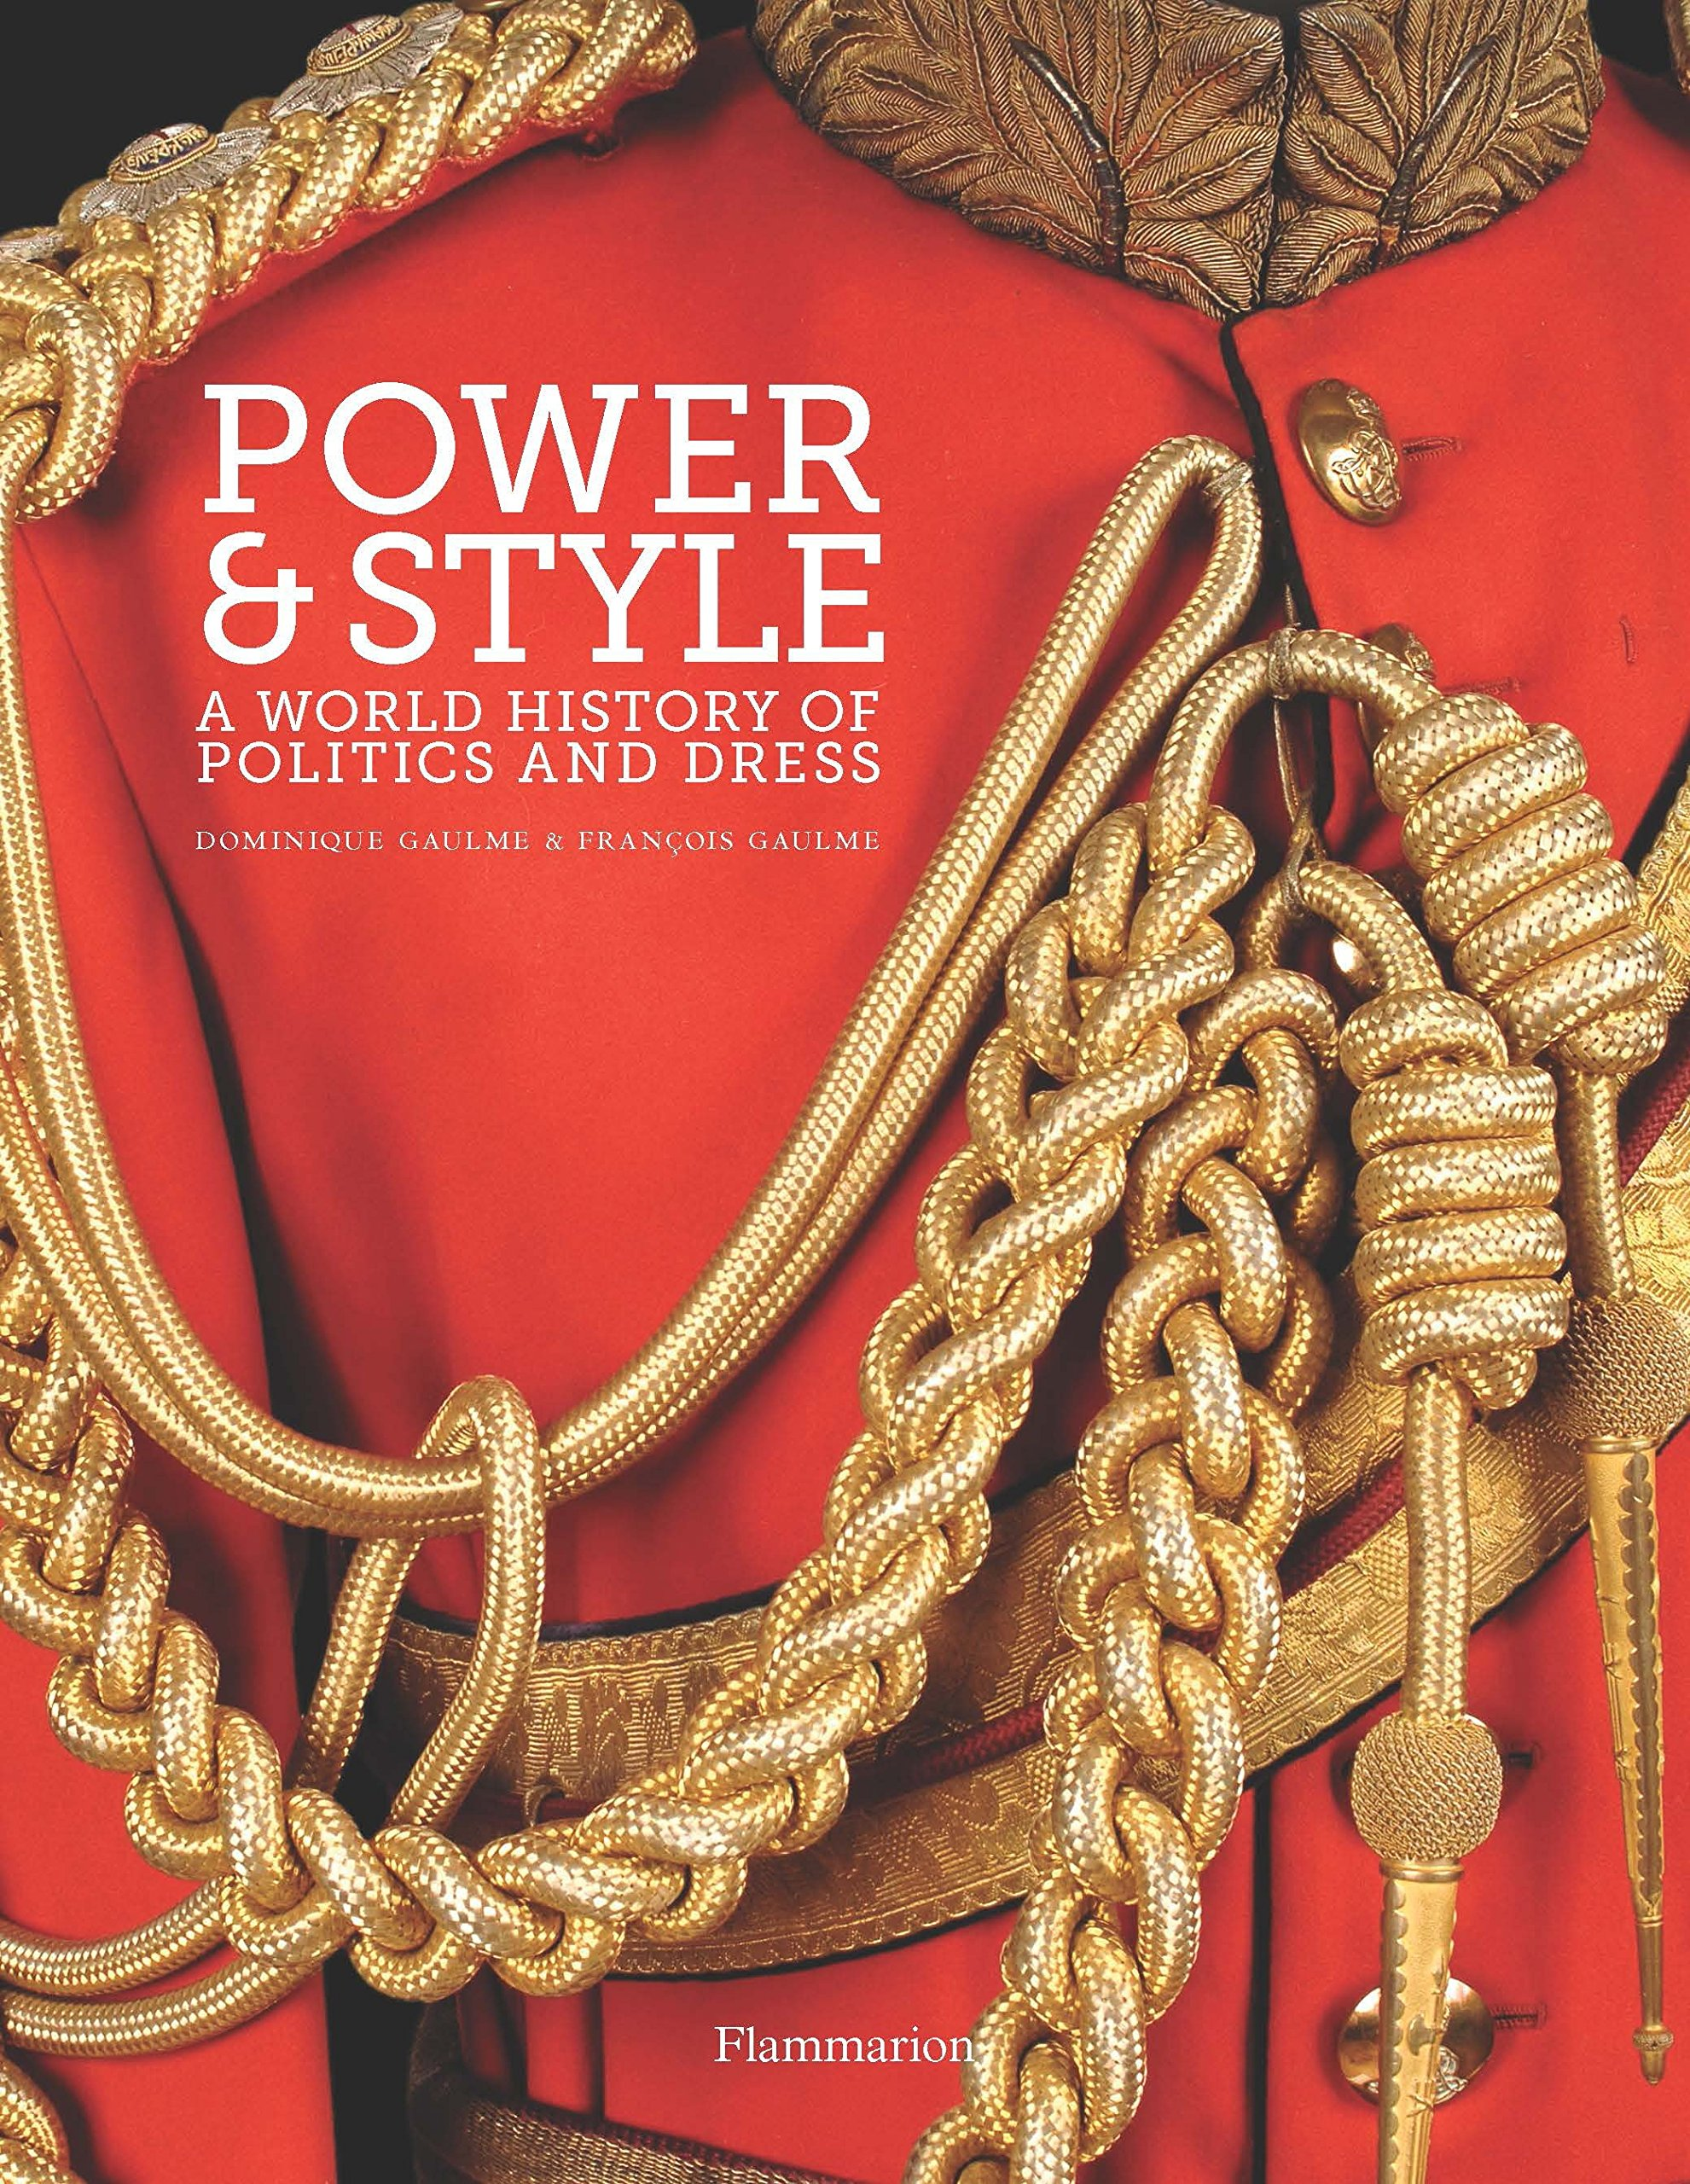 Power and Style: A World History of Politics and Dress by Brand: Flammarion